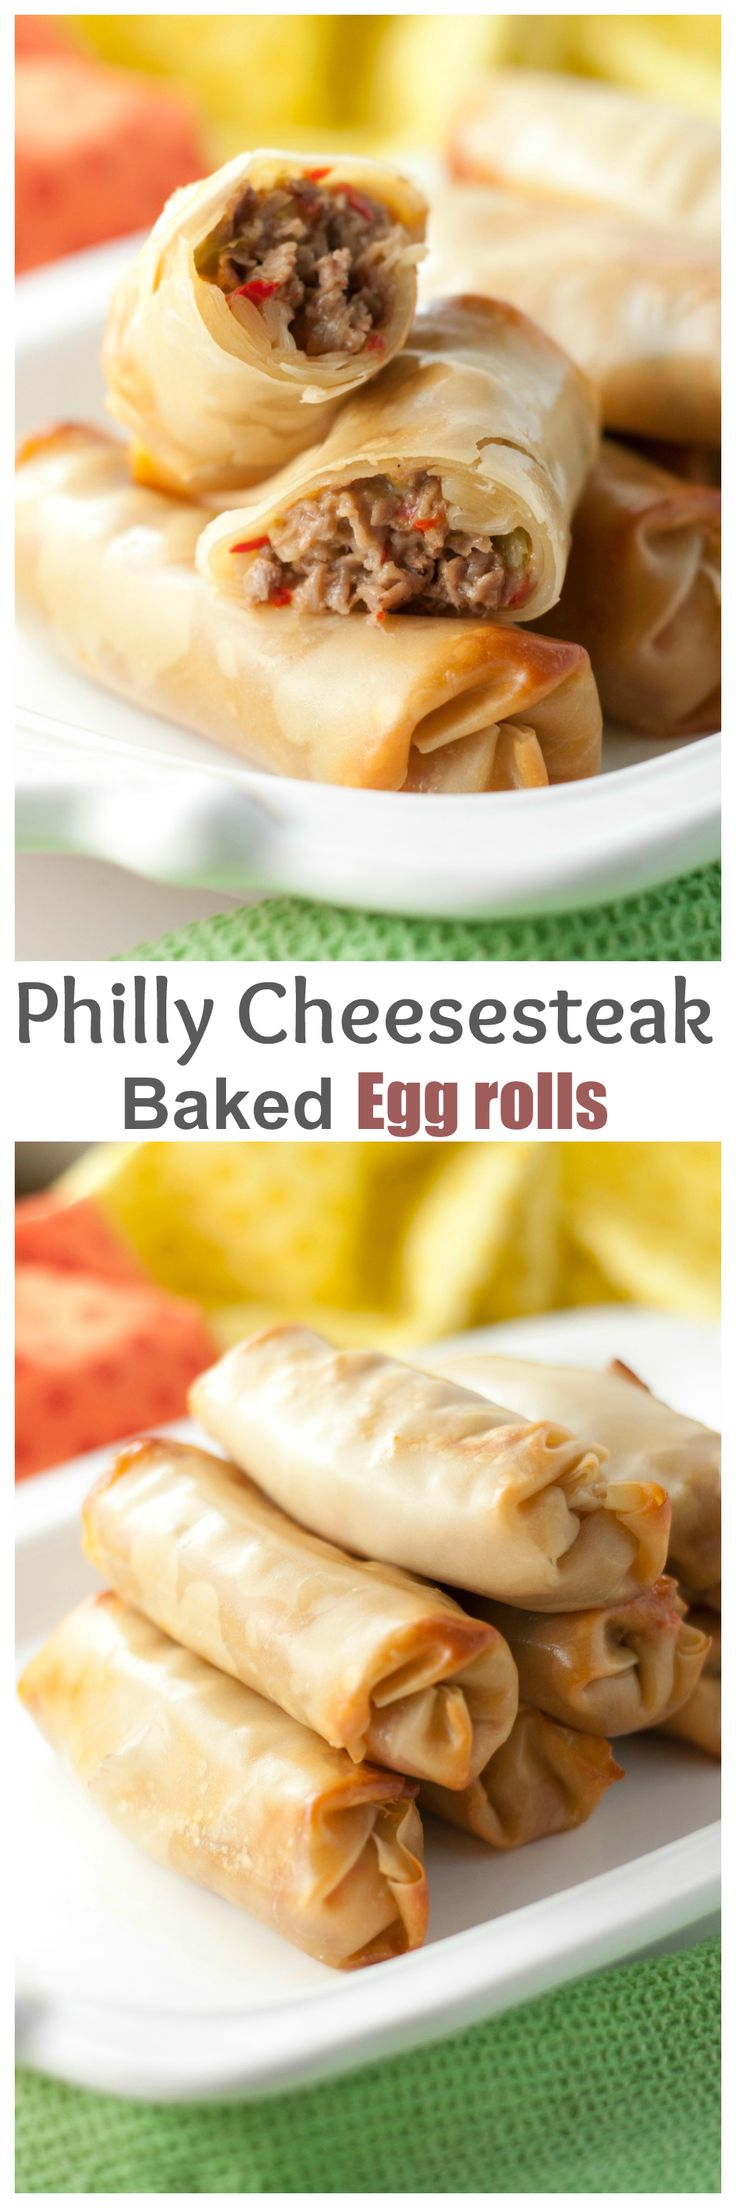 Philly Cheesesteak Baked Egg Rolls + Toaster Oven GIVEAWAY!  This is the perfect cheesy party appetizer or easy dinner recipe!